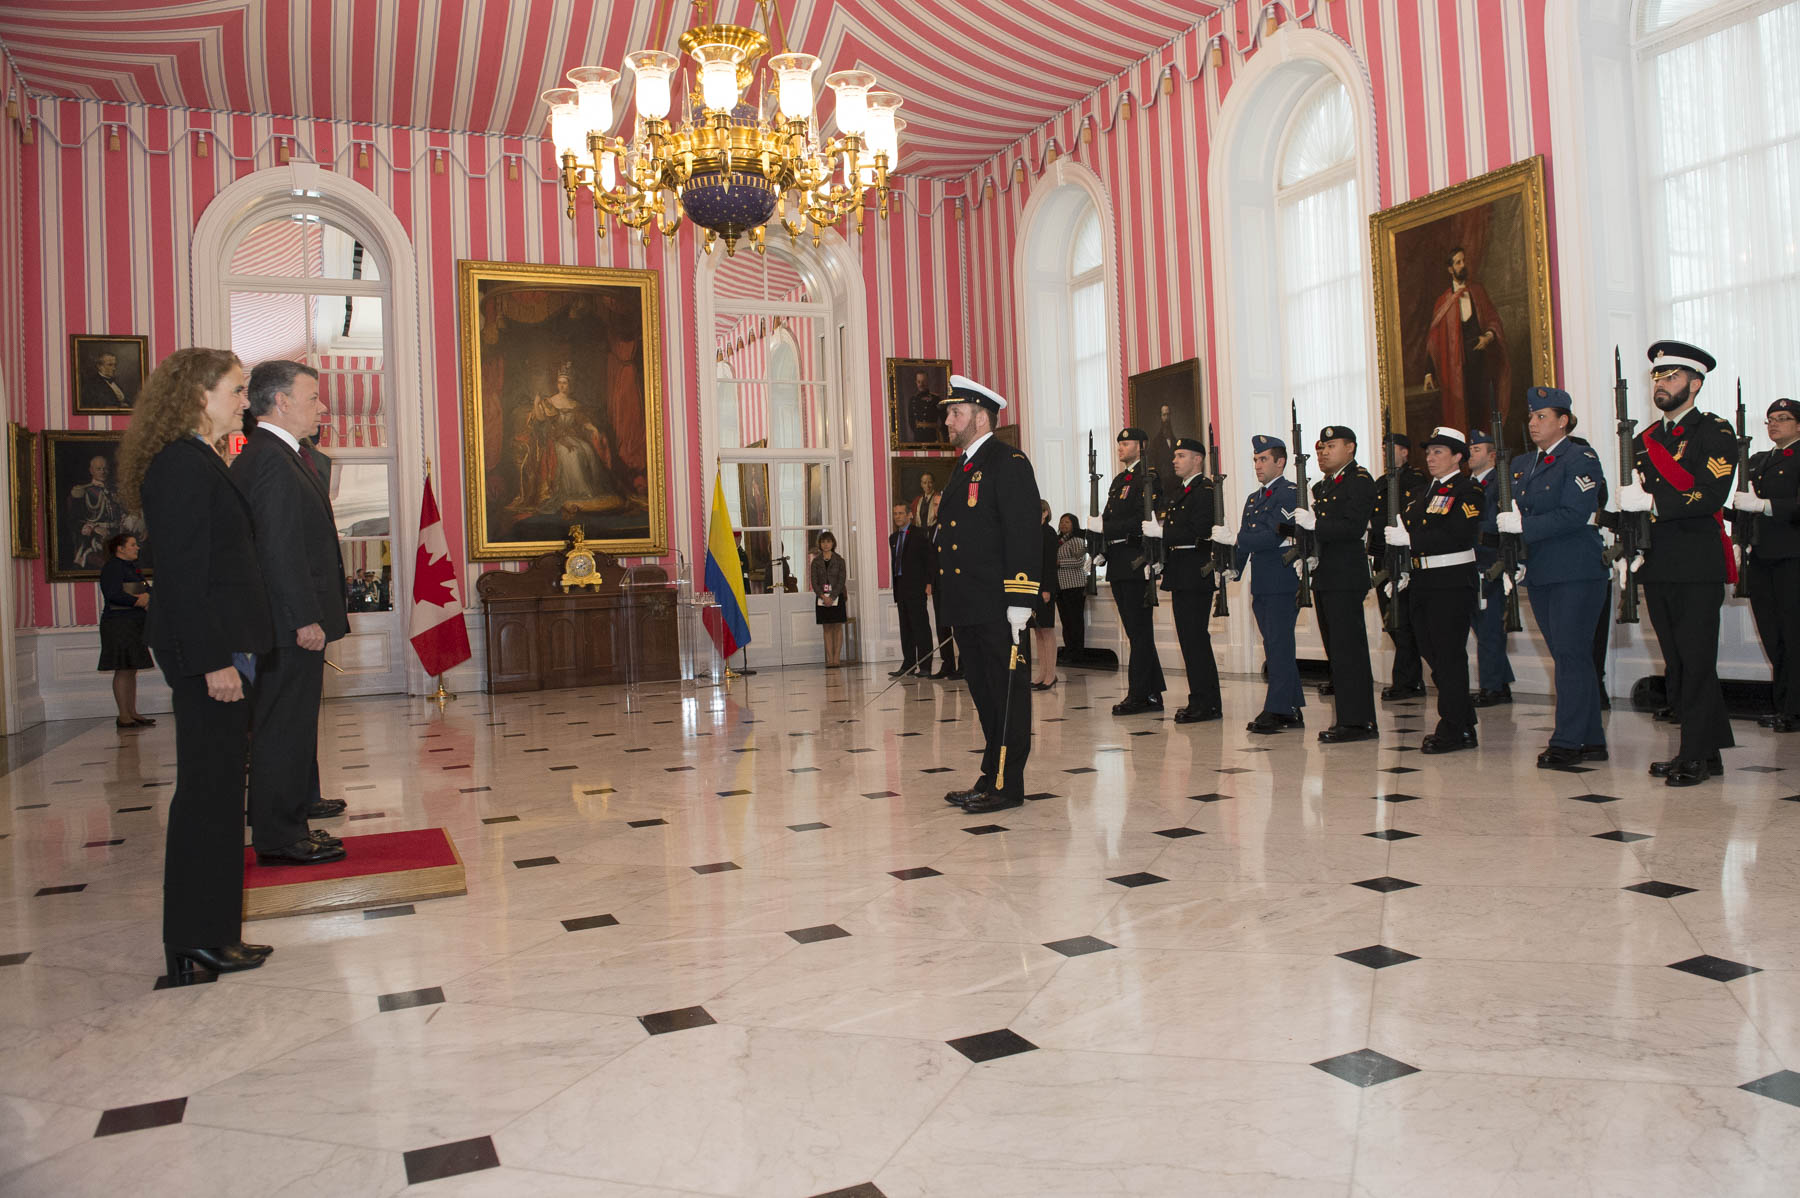 Due to inclement weather, the welcoming ceremony took place inside Rideau Hall's Tent Room.